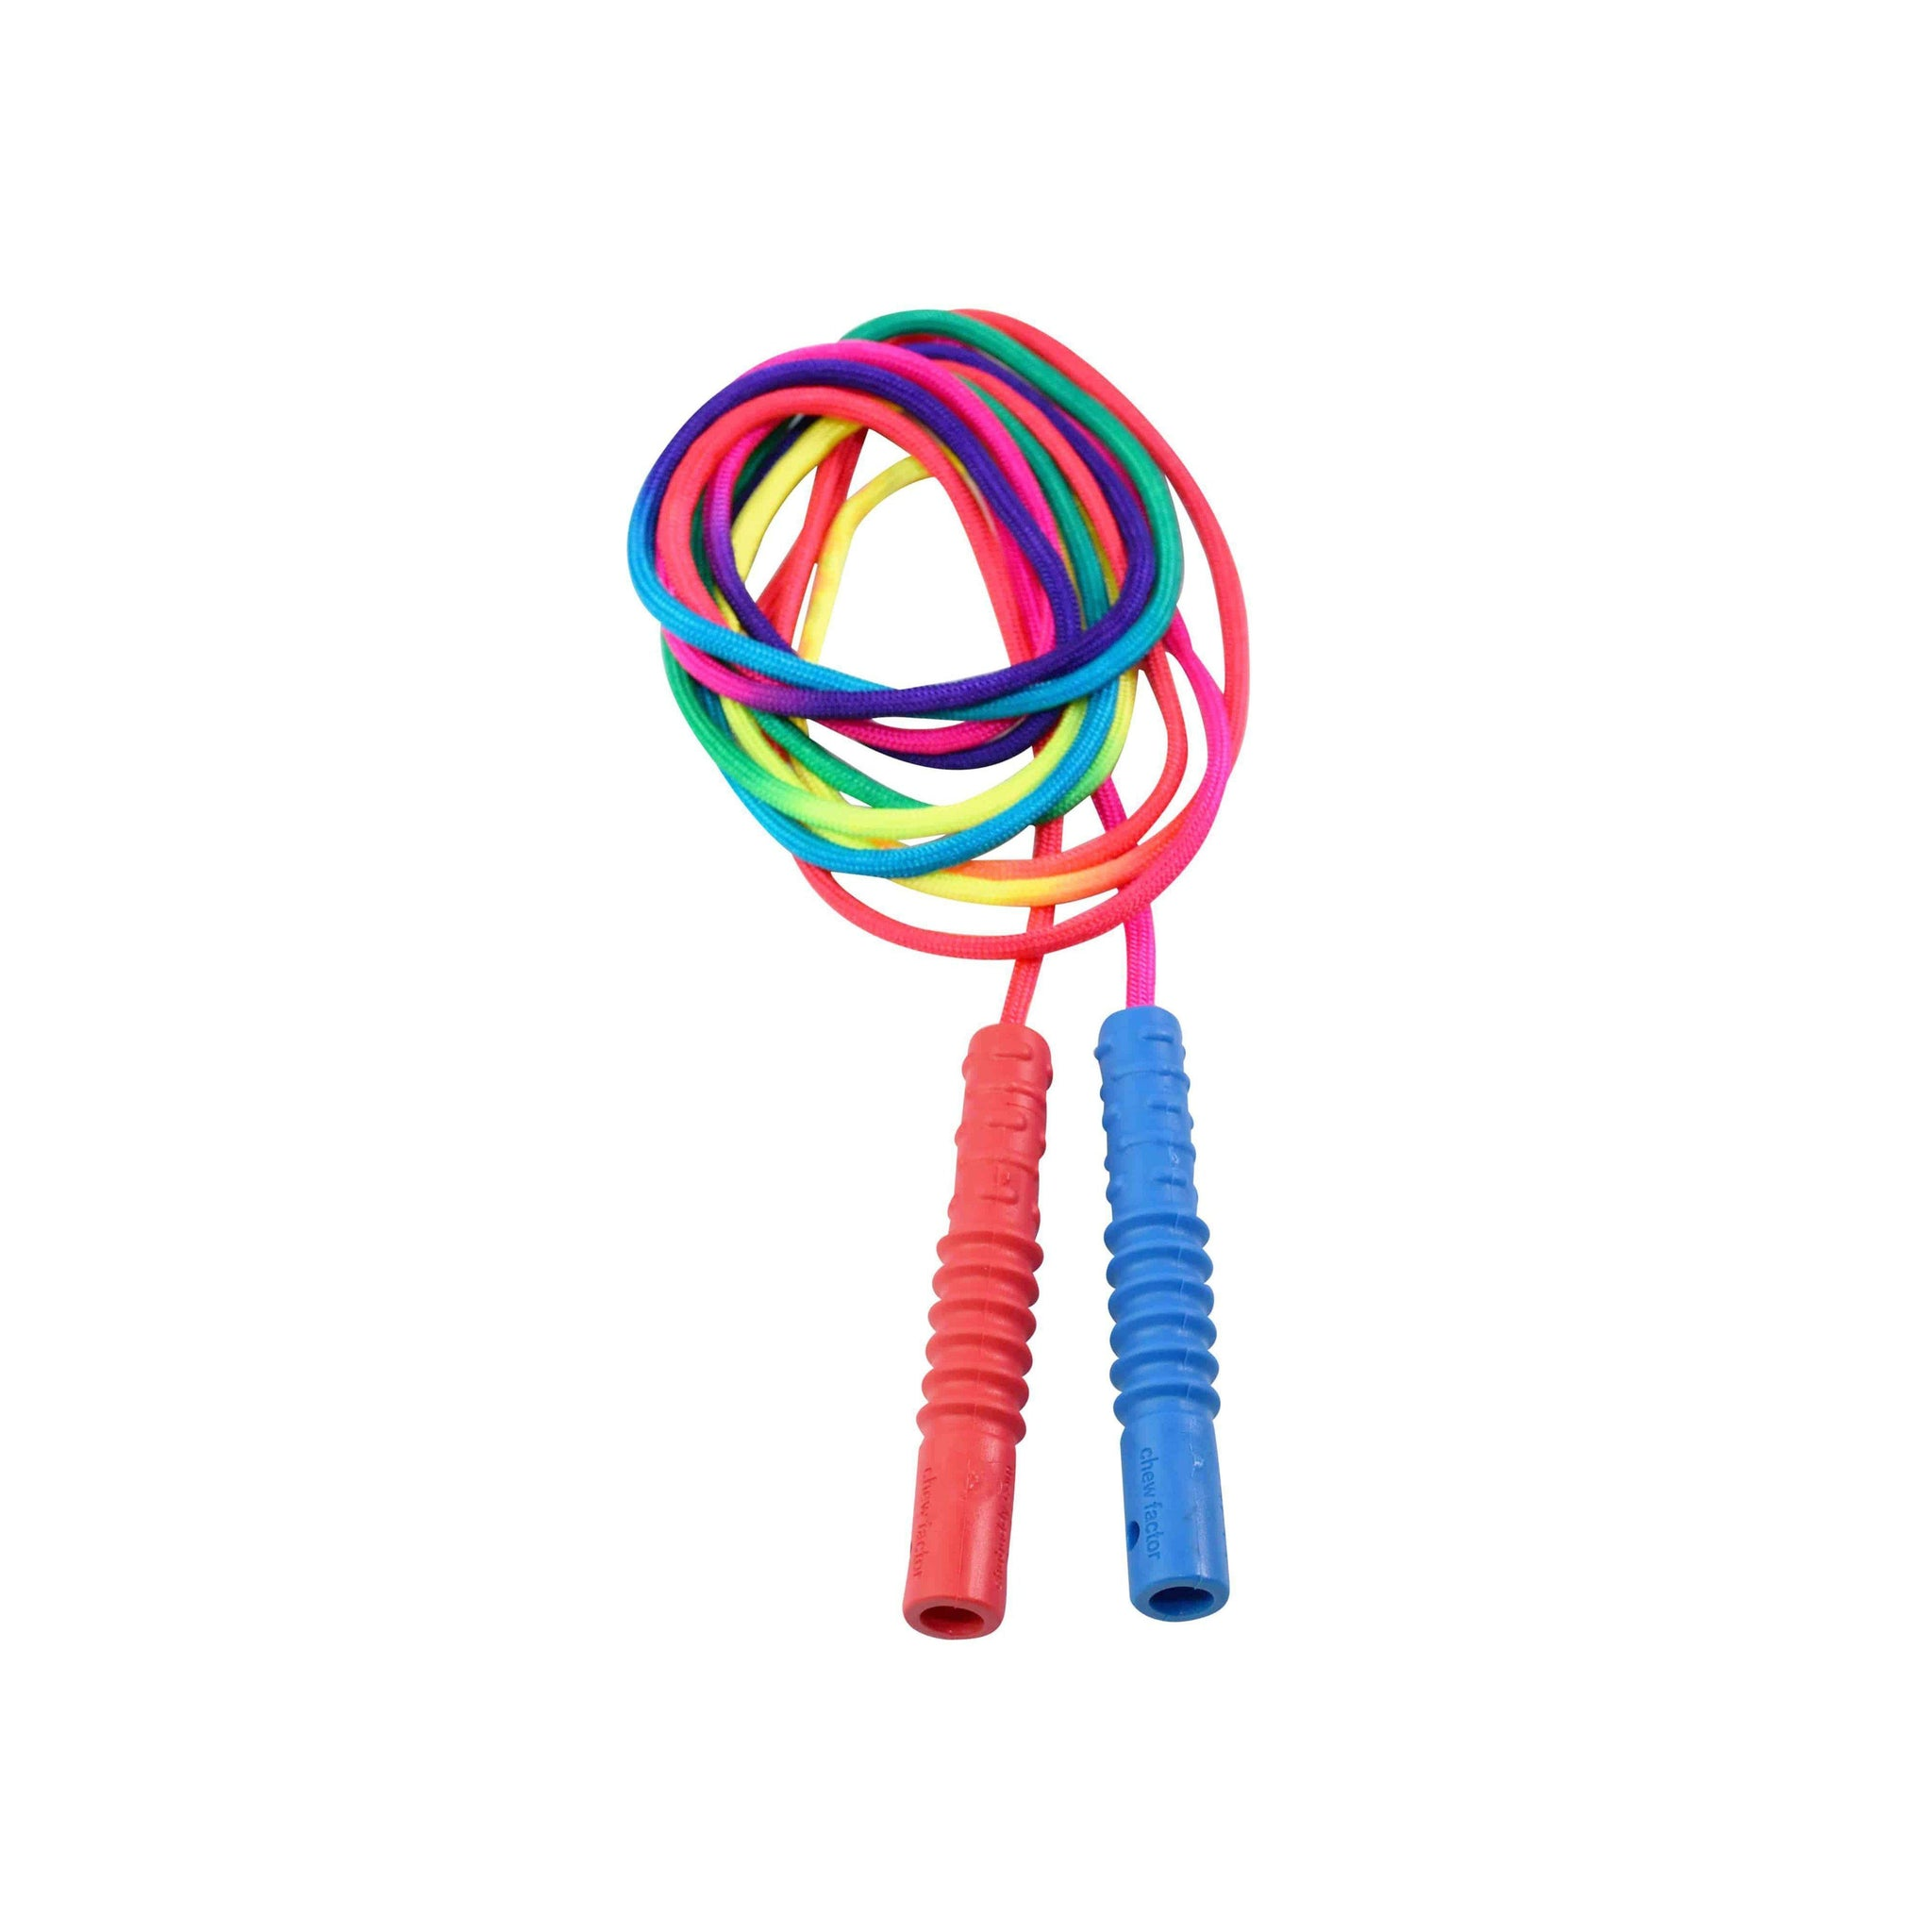 Chubuddy Red Cord Zilla with Rainbow Cord and Install Pack